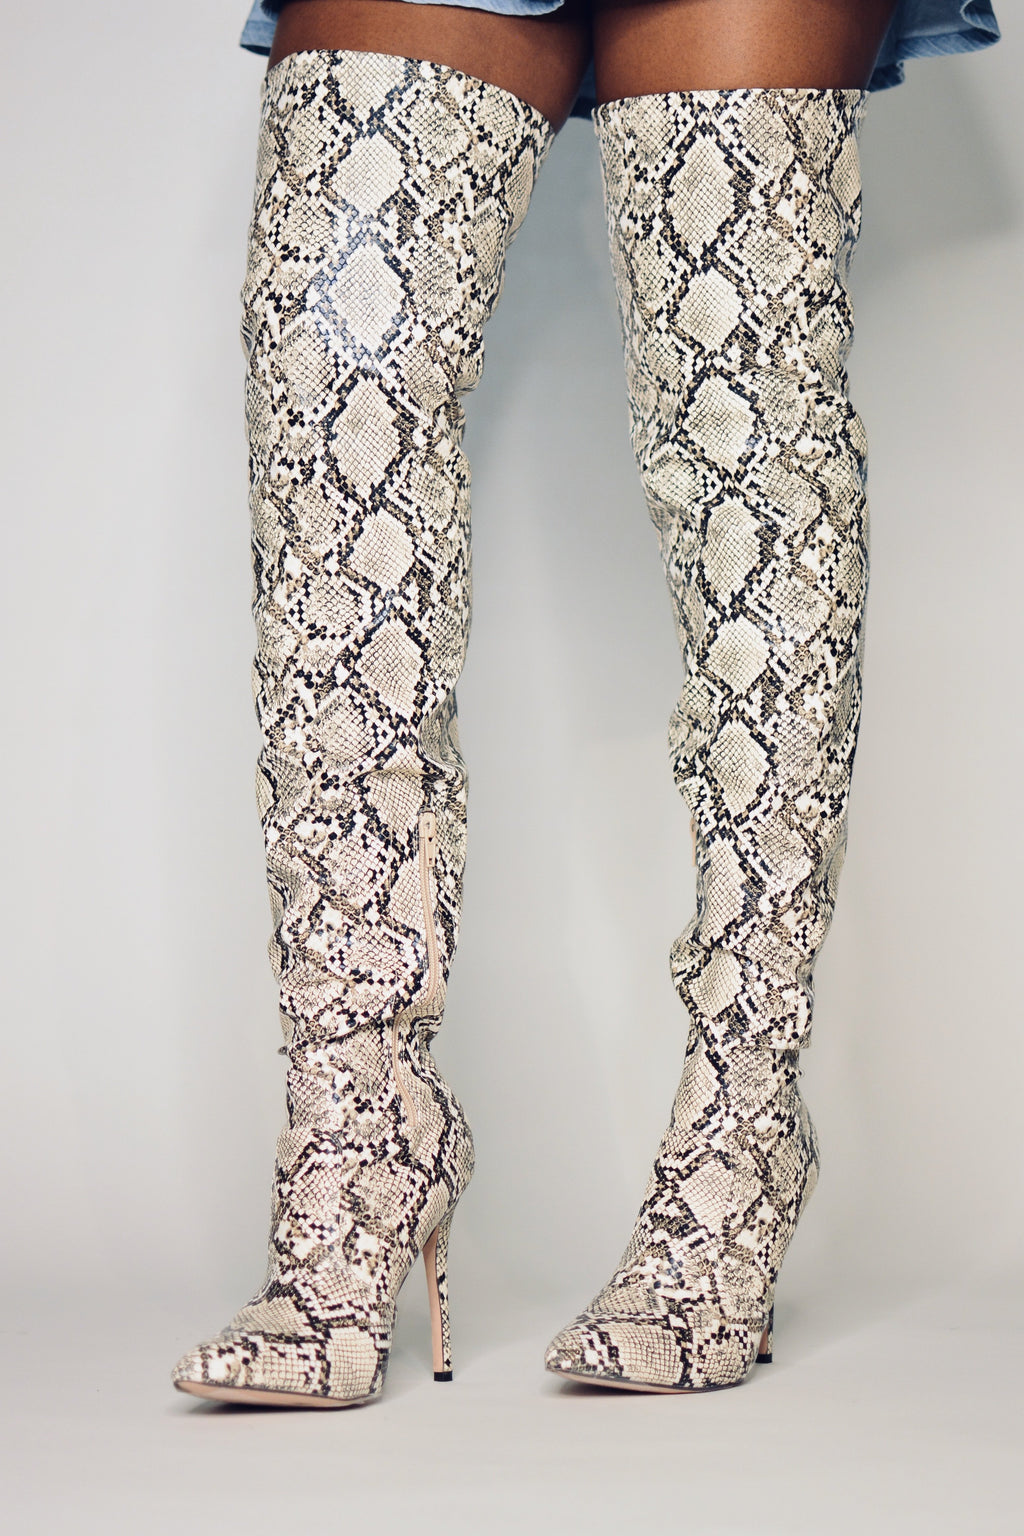 Lola | Snake Print Thigh High Boots